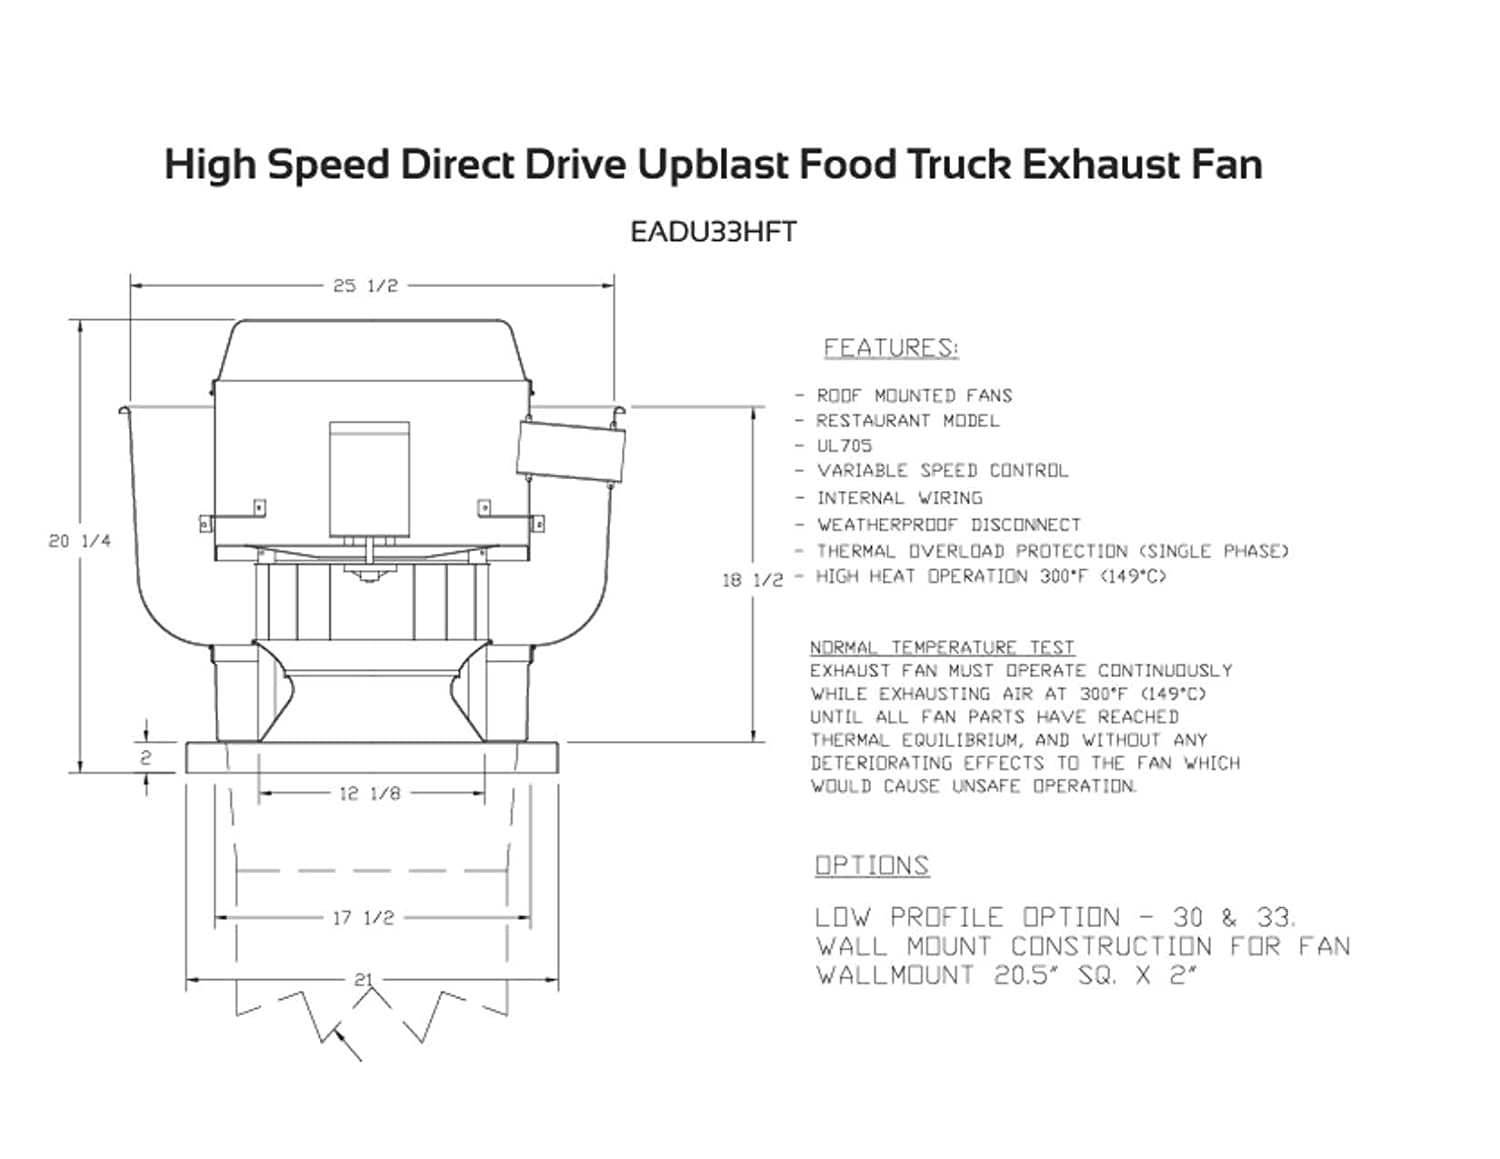 600 1050 Cfm Direct Drive Upblast Food Truck Concession Trailer Duct Fan Speed Control Wiring Diagram Exhaust With Mounting Bracket Motor333 Hp 115 V Single Phase